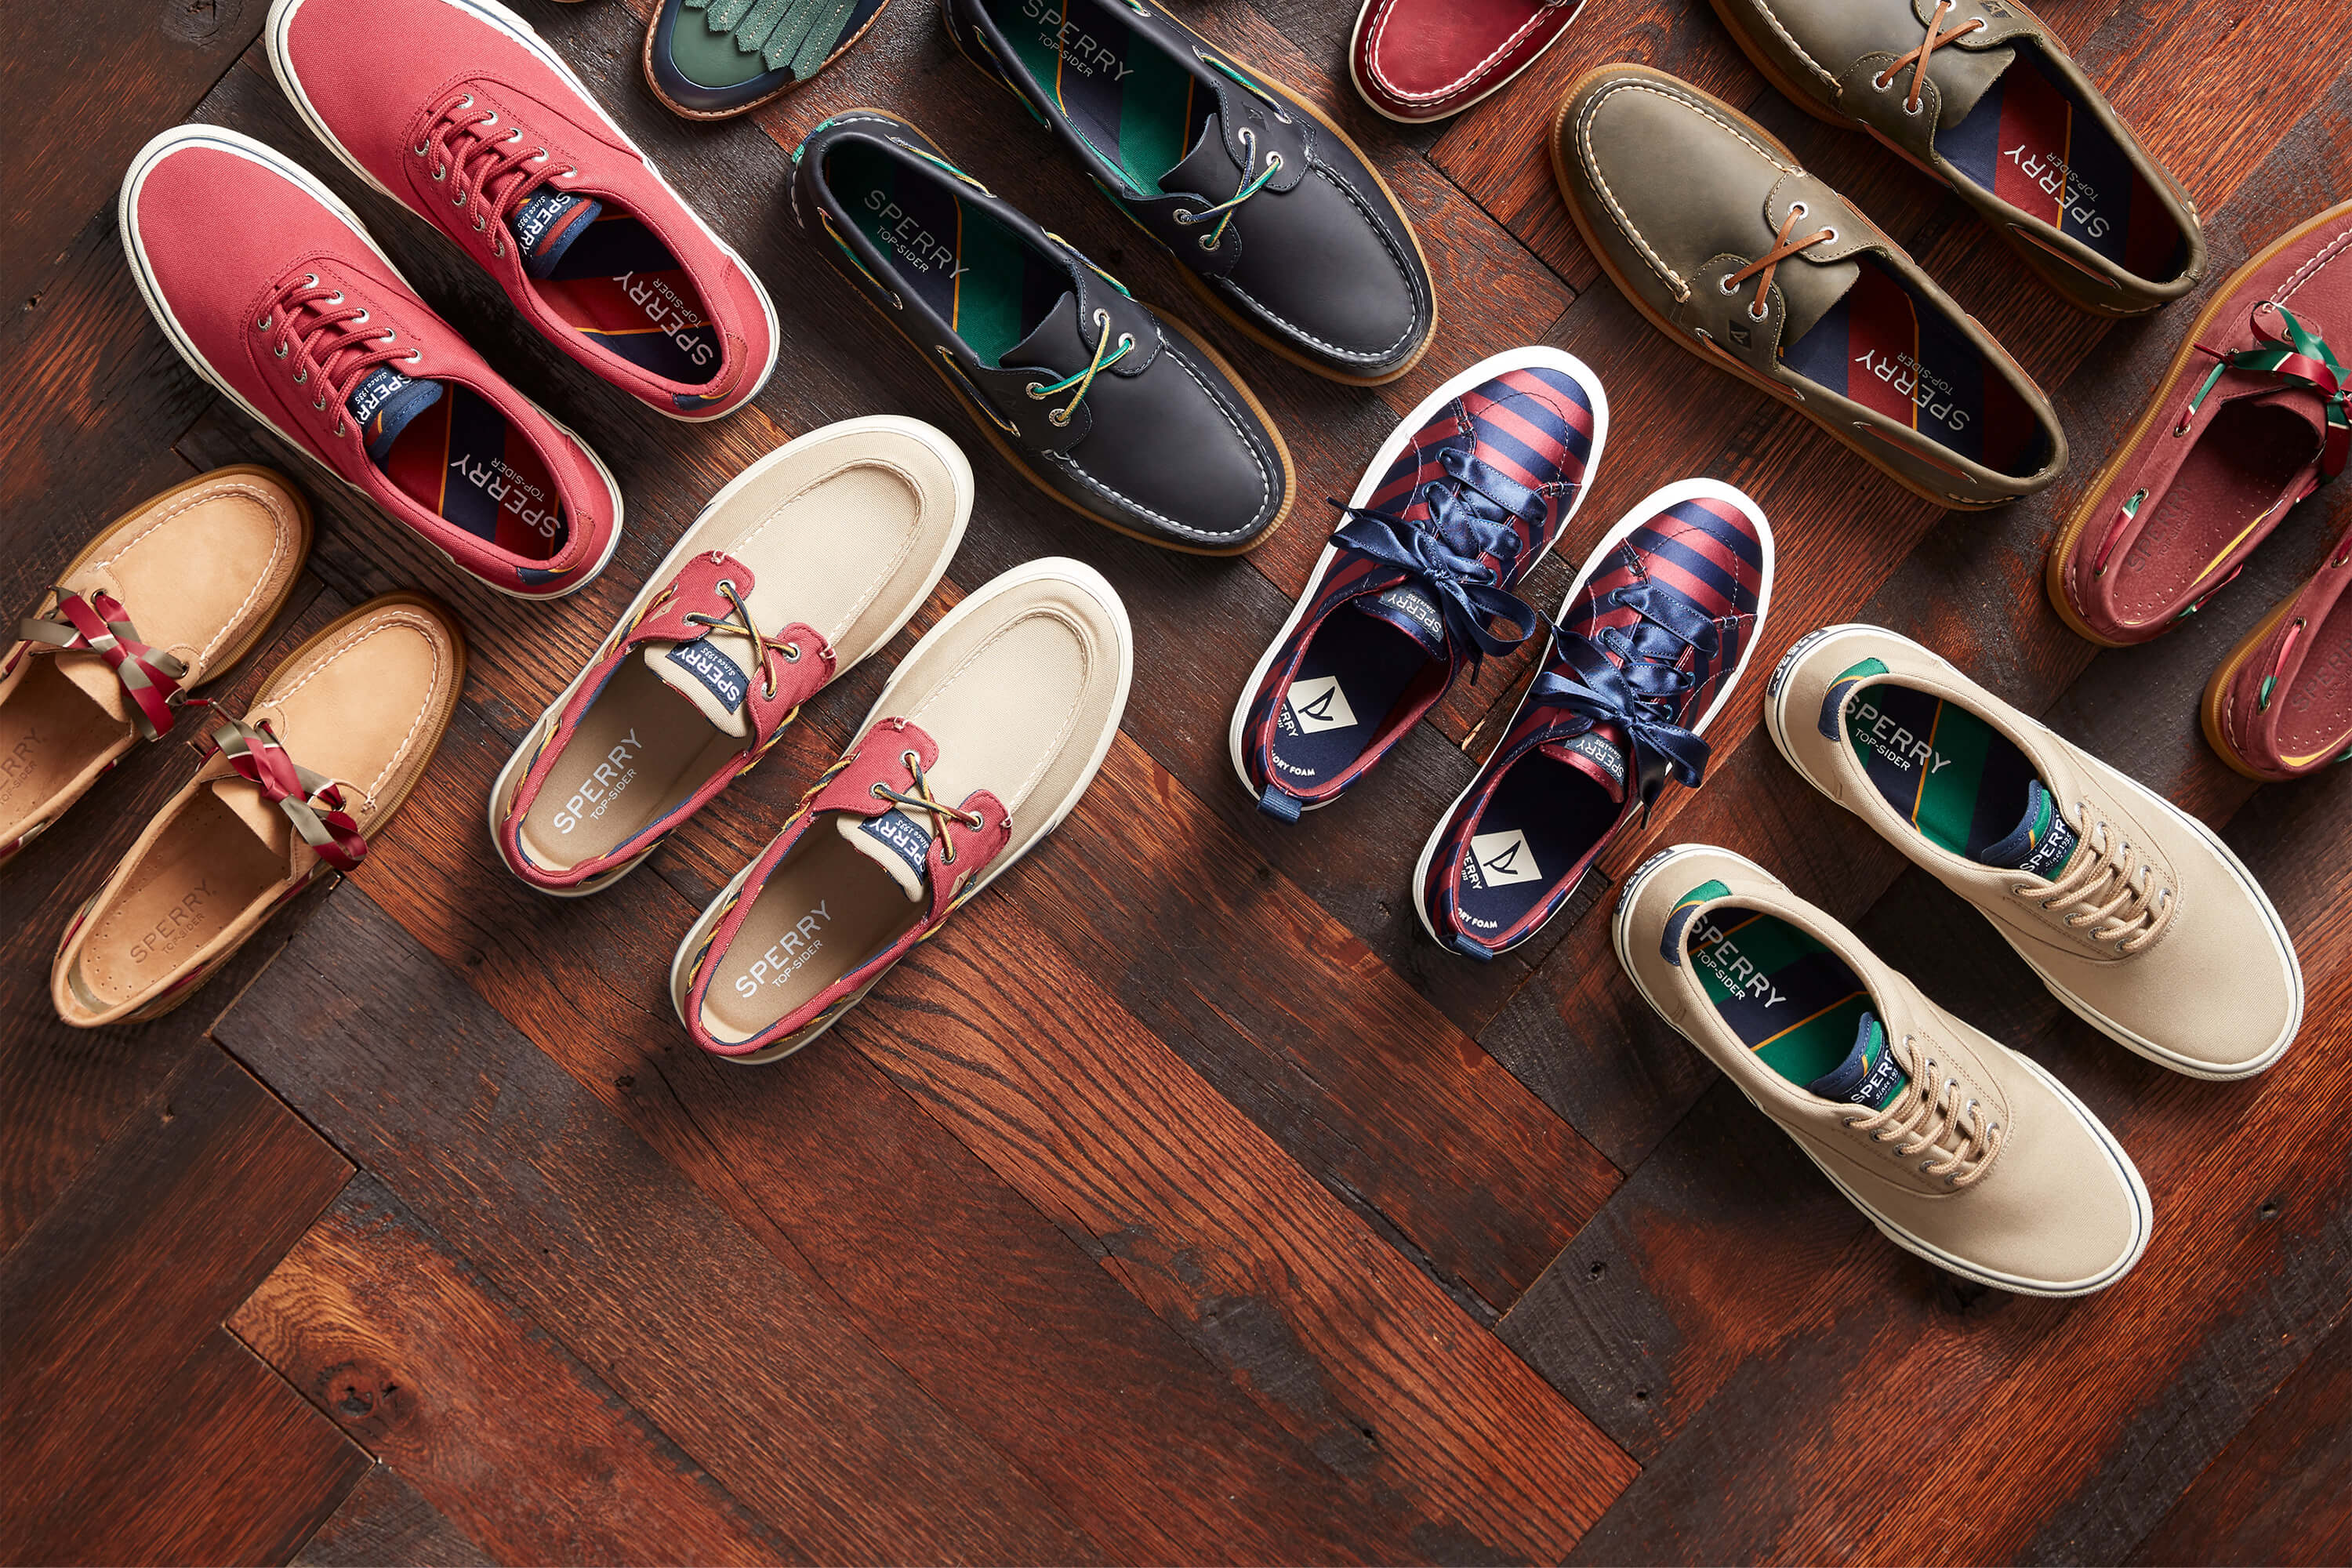 Many pairs of Varsity Classics laid out in a criss-cross fashion on a parquet floor.